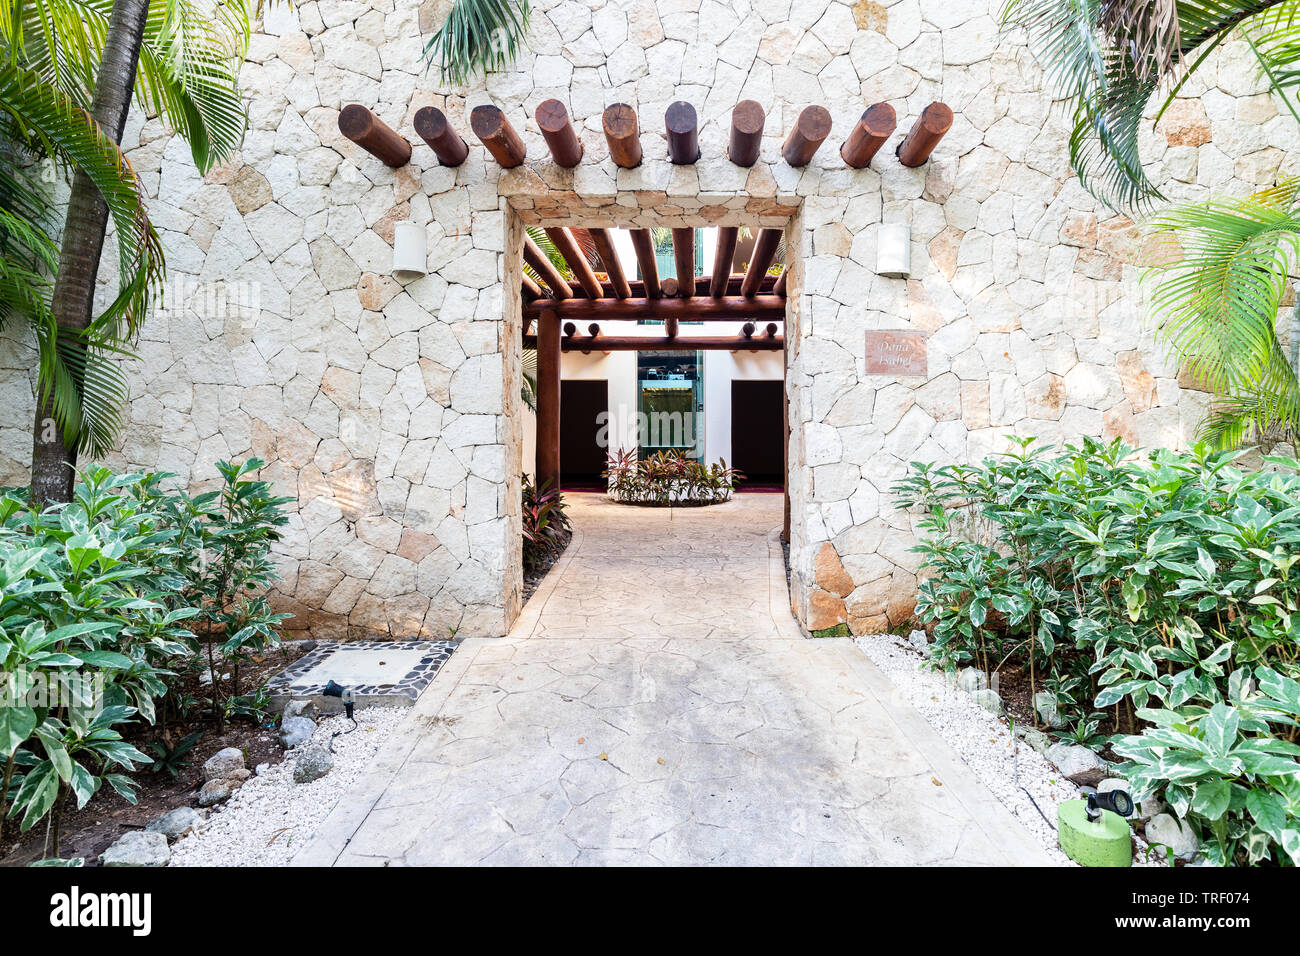 The entrance to one of the hotel buildings, surrounded by plants, at the Valentin Imperial Maya all inclusive resort. - Stock Image